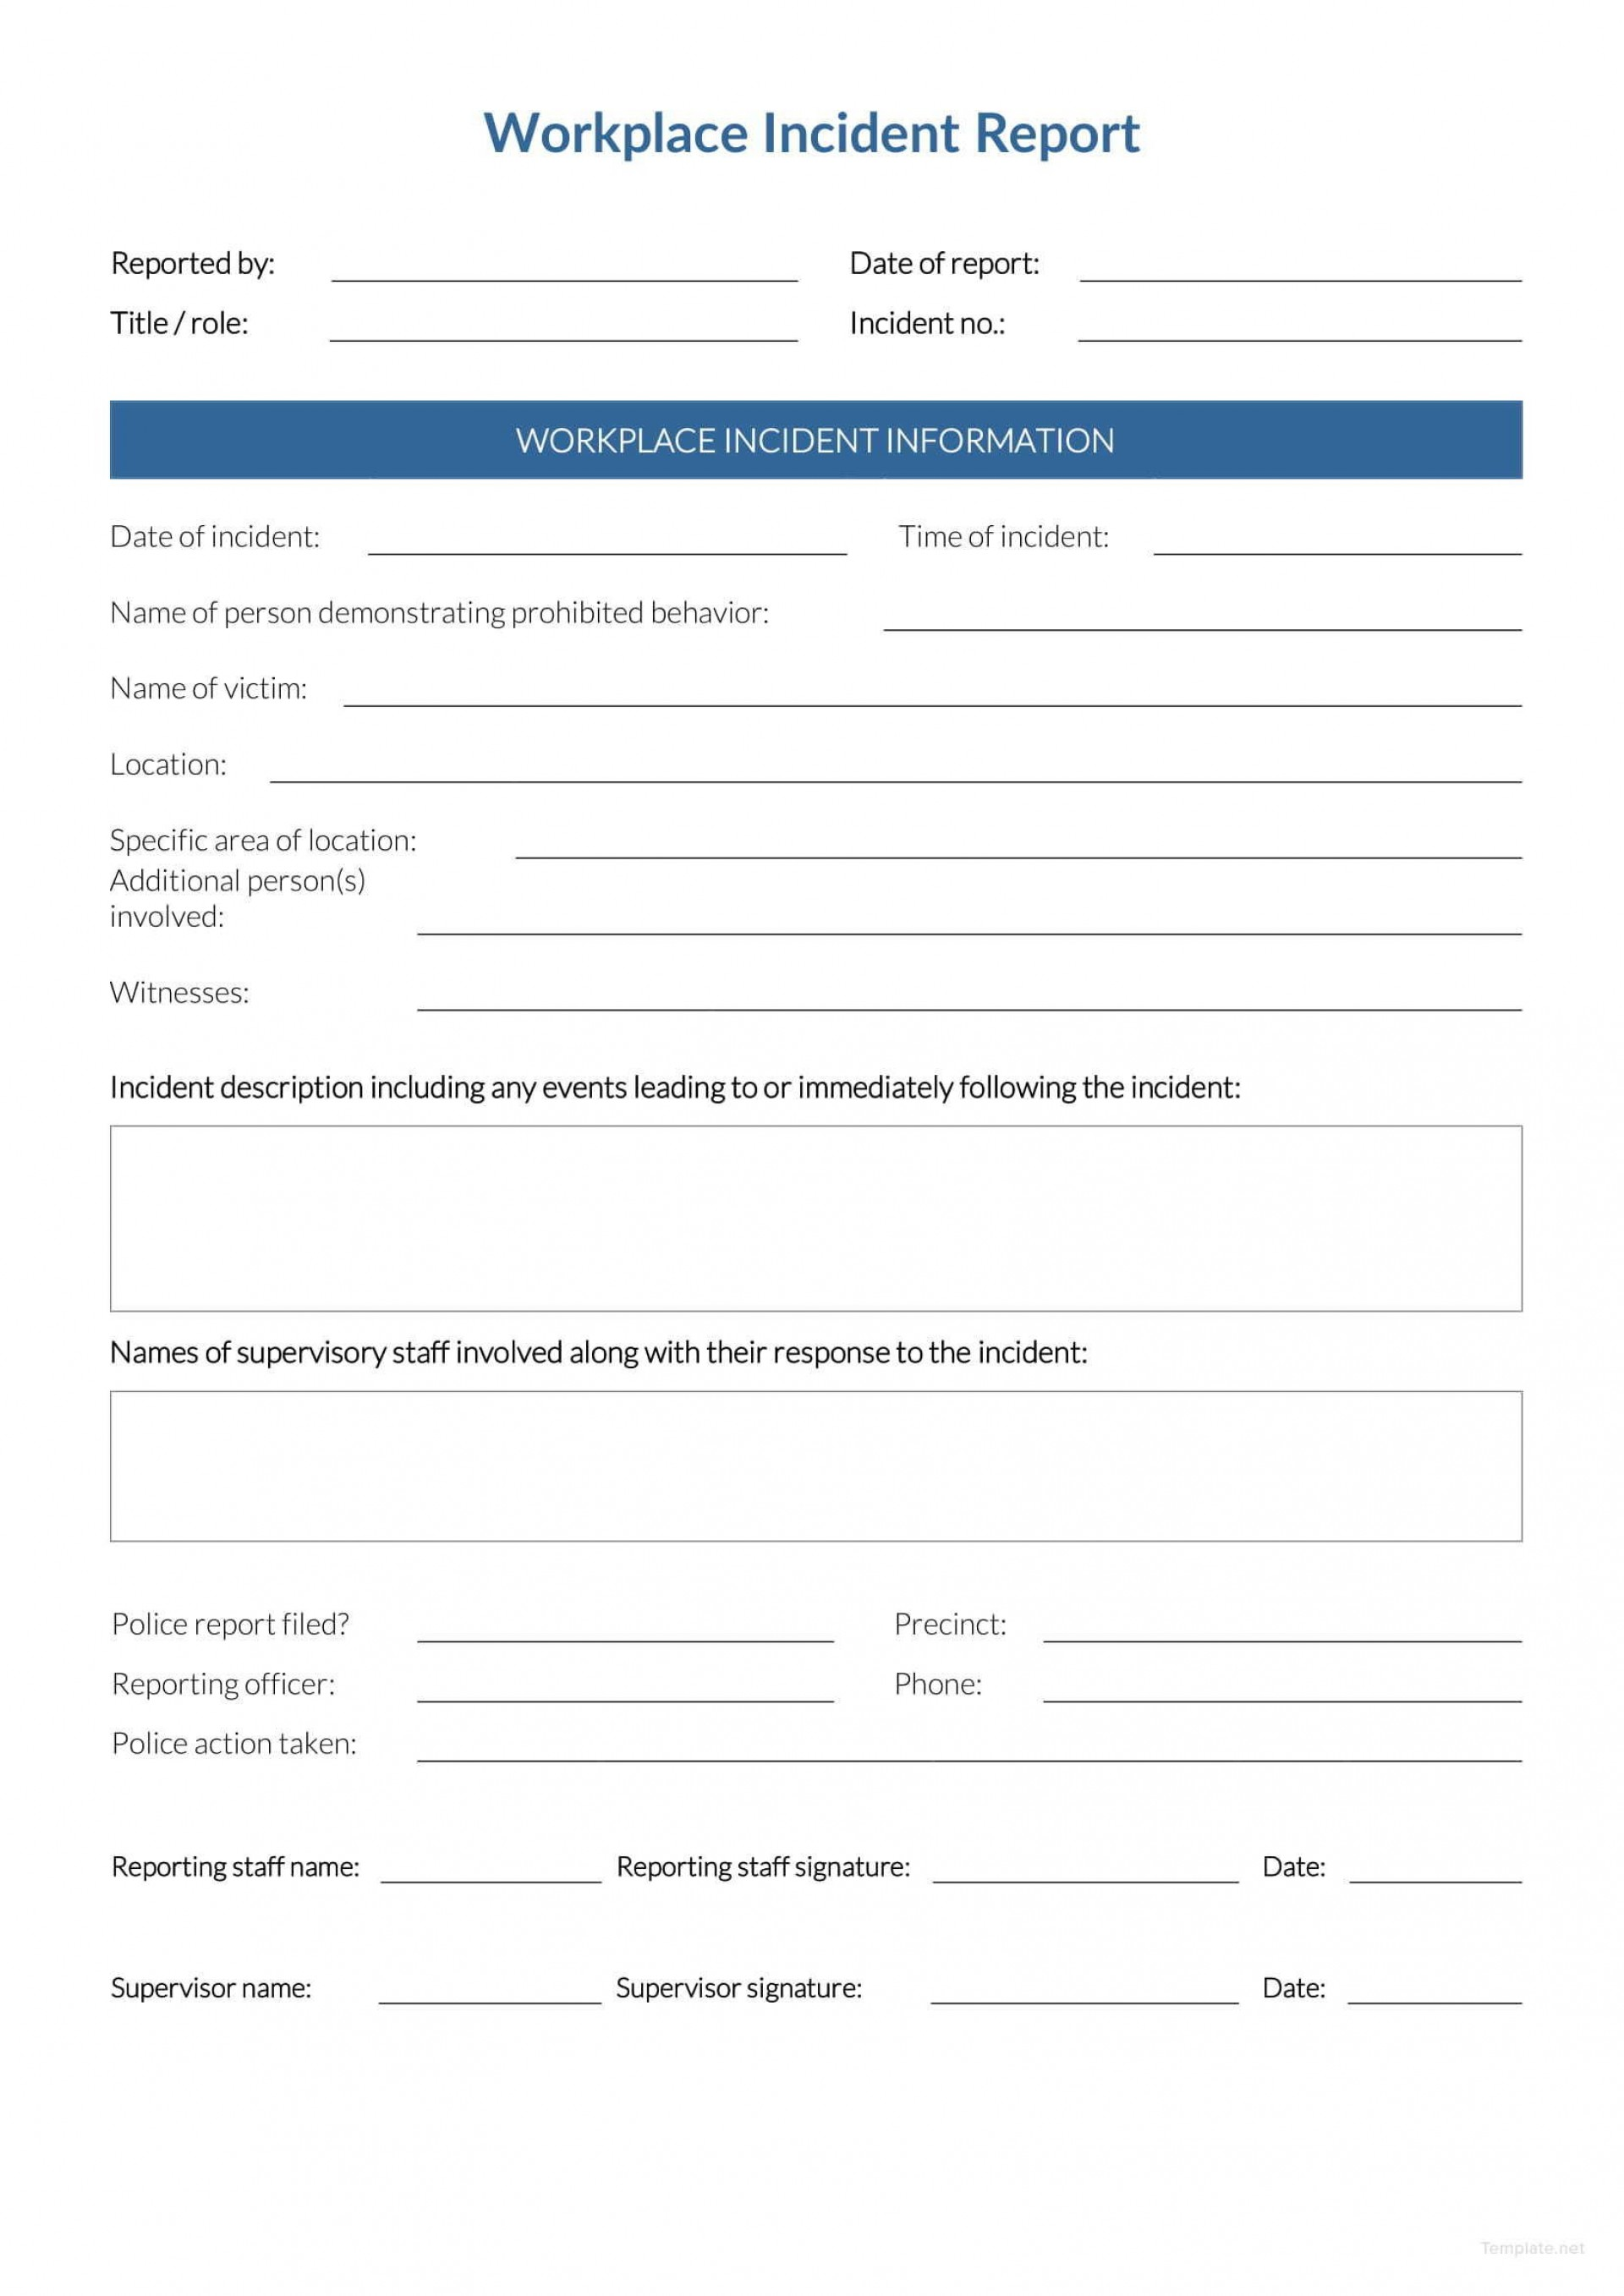 Incident Report Form Template Word Workplace  Downloadable Free1920